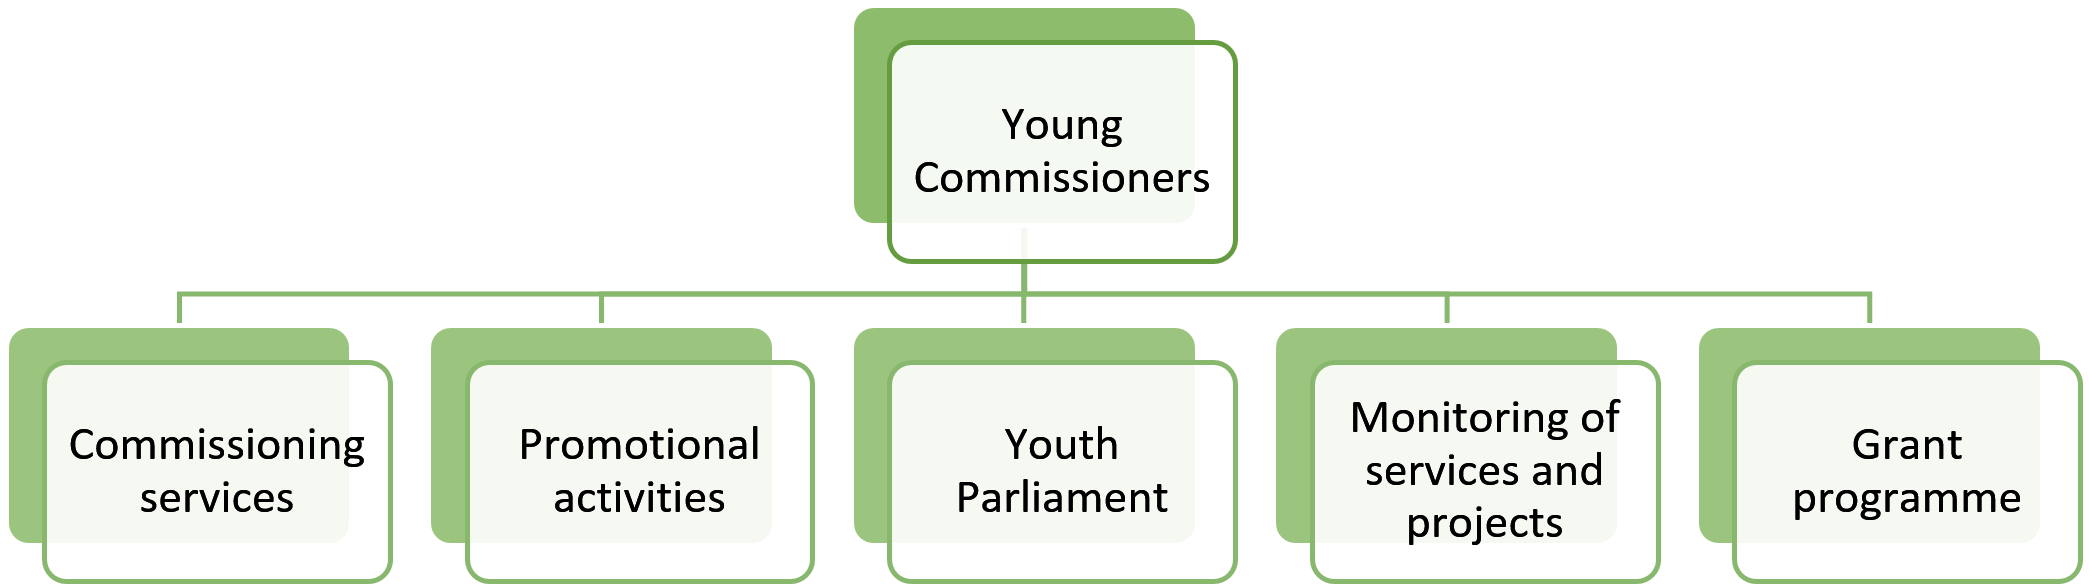 A picture explaining what the young commissioners are, the information is also available below